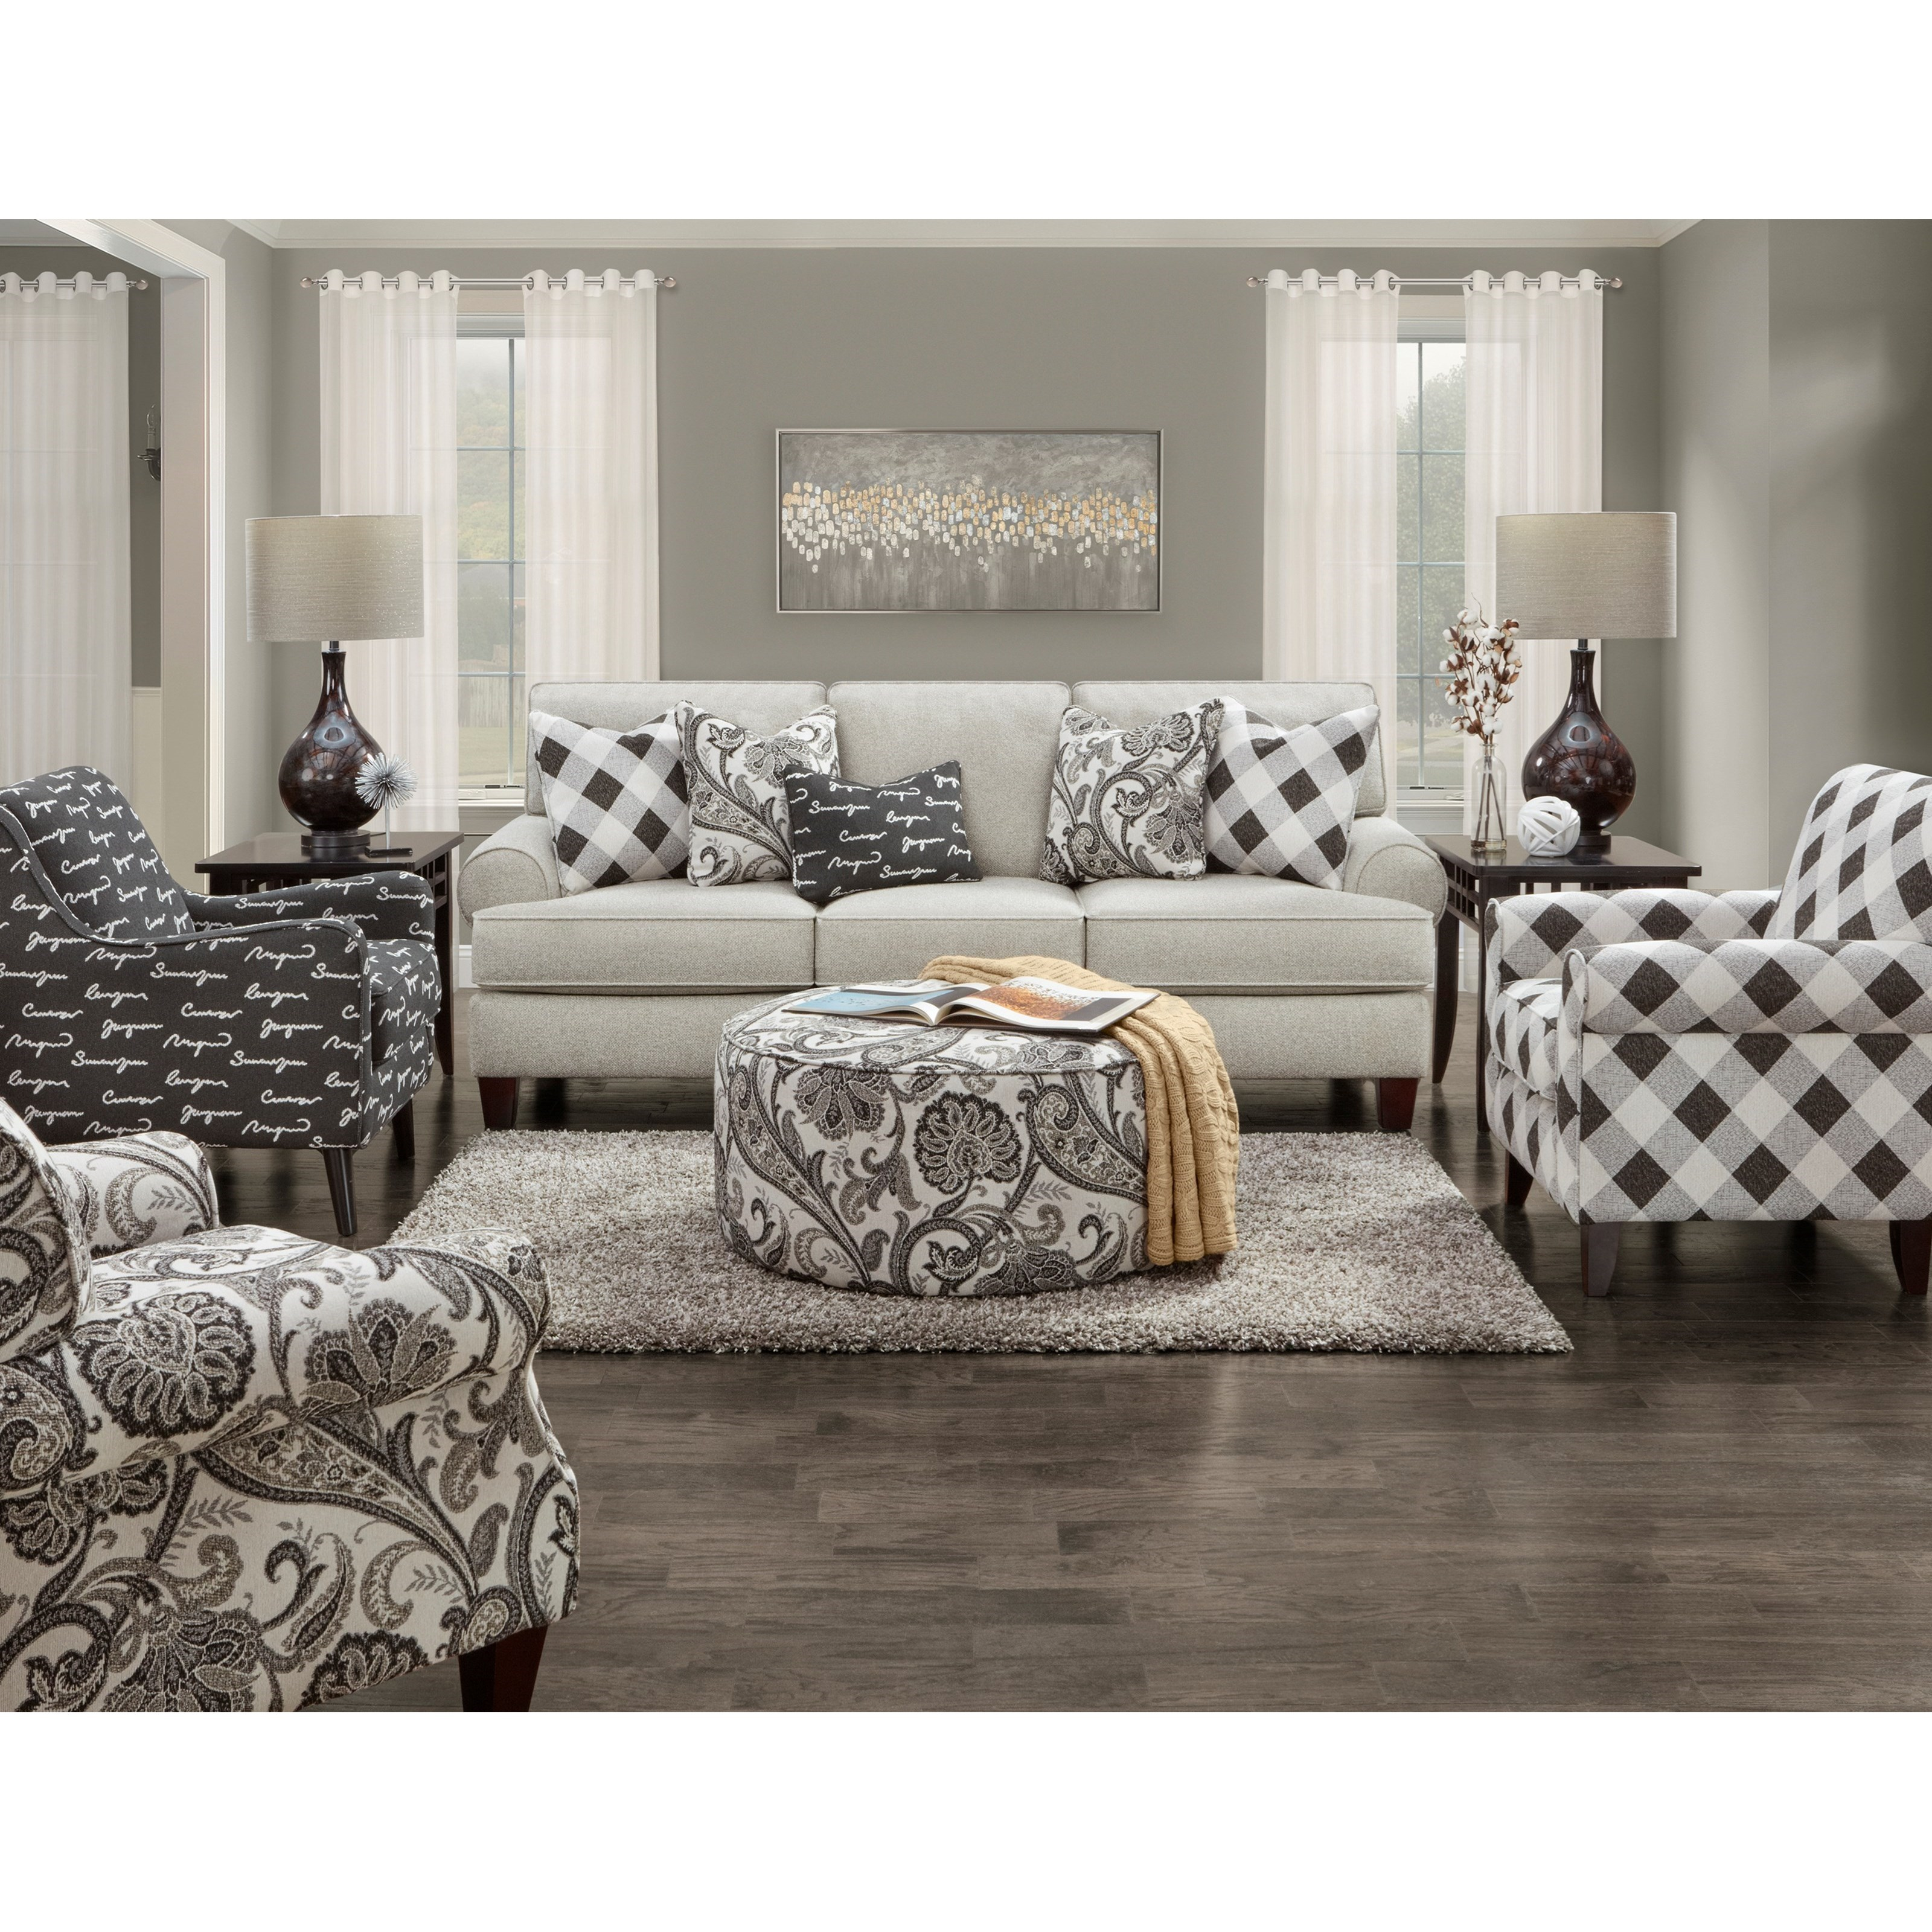 4200 Stationary Living Room Group by Fusion Furniture at Prime Brothers Furniture